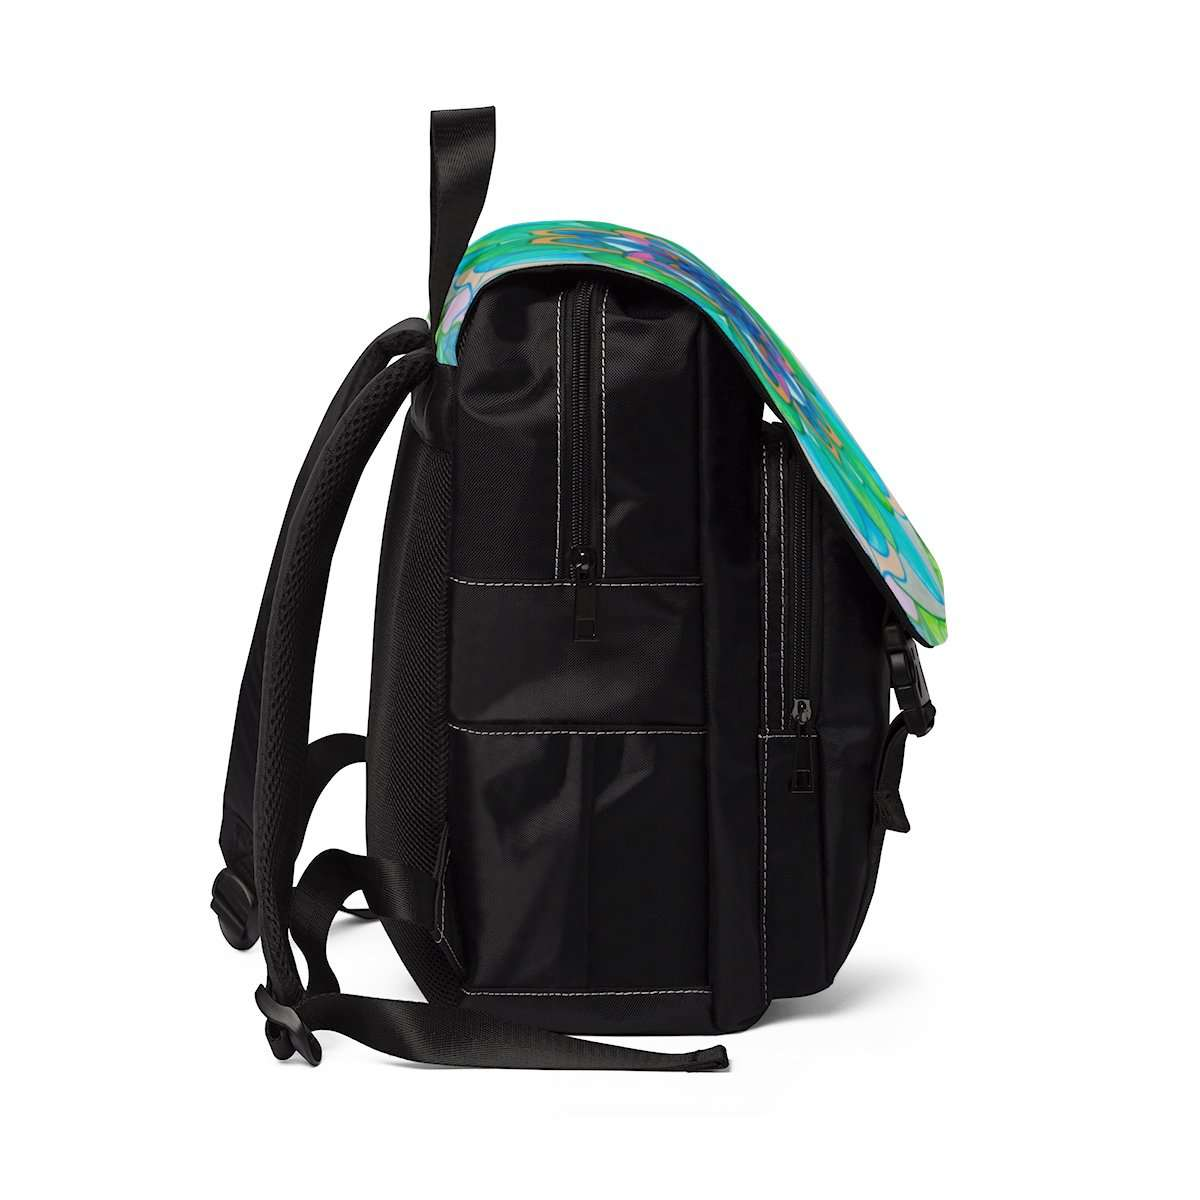 Openness - Unisex Casual Shoulder Backpack